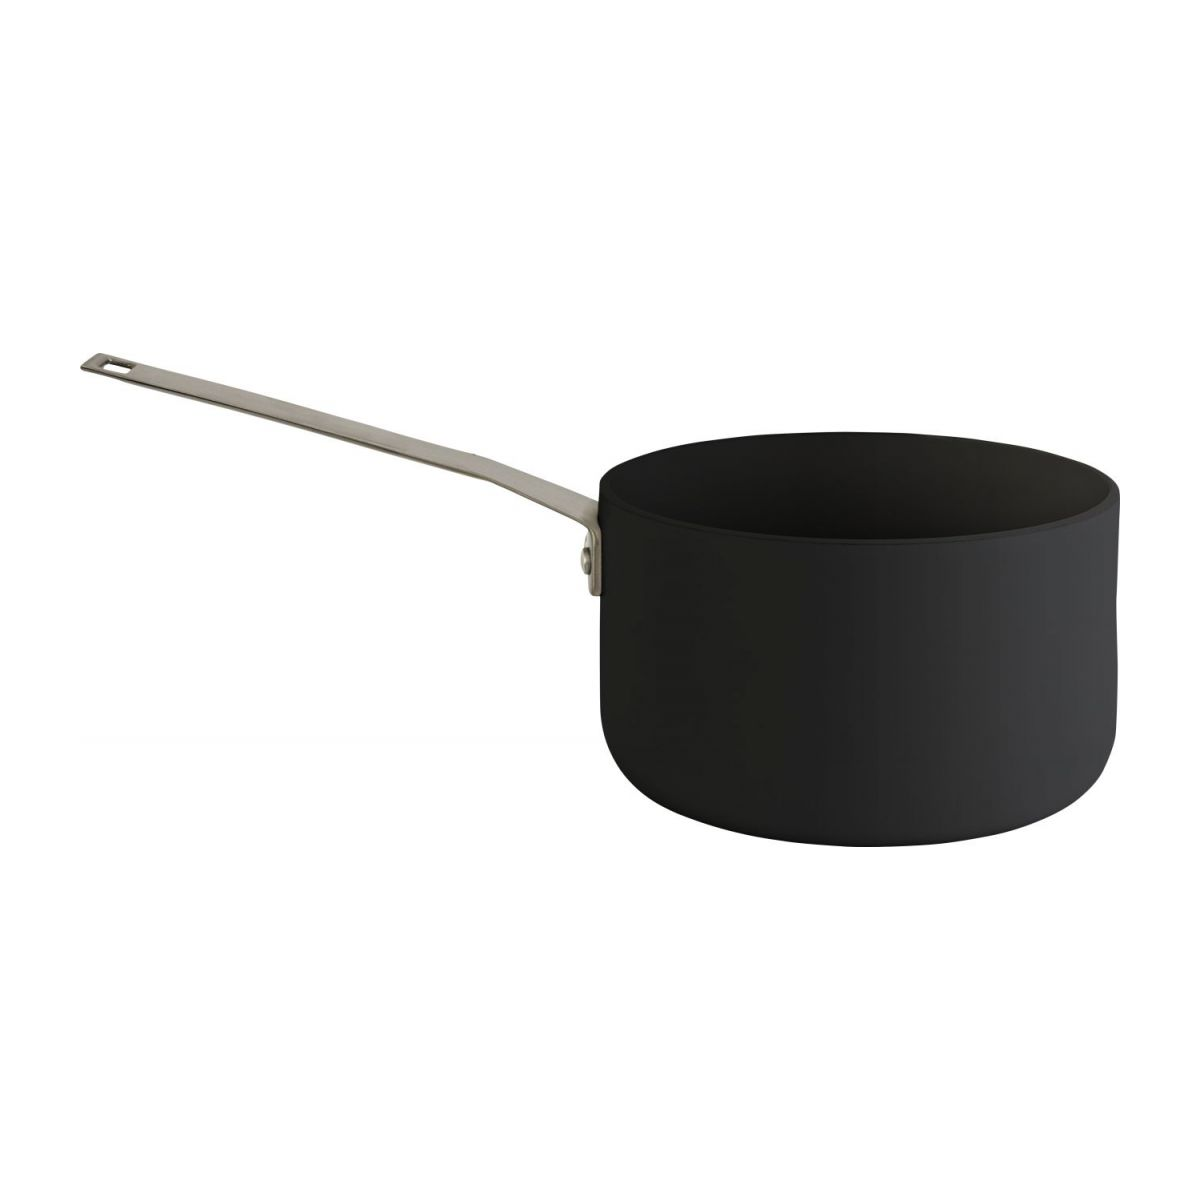 Aluminium saucepan and lid 18 cm with inner coating in Teflon n°4